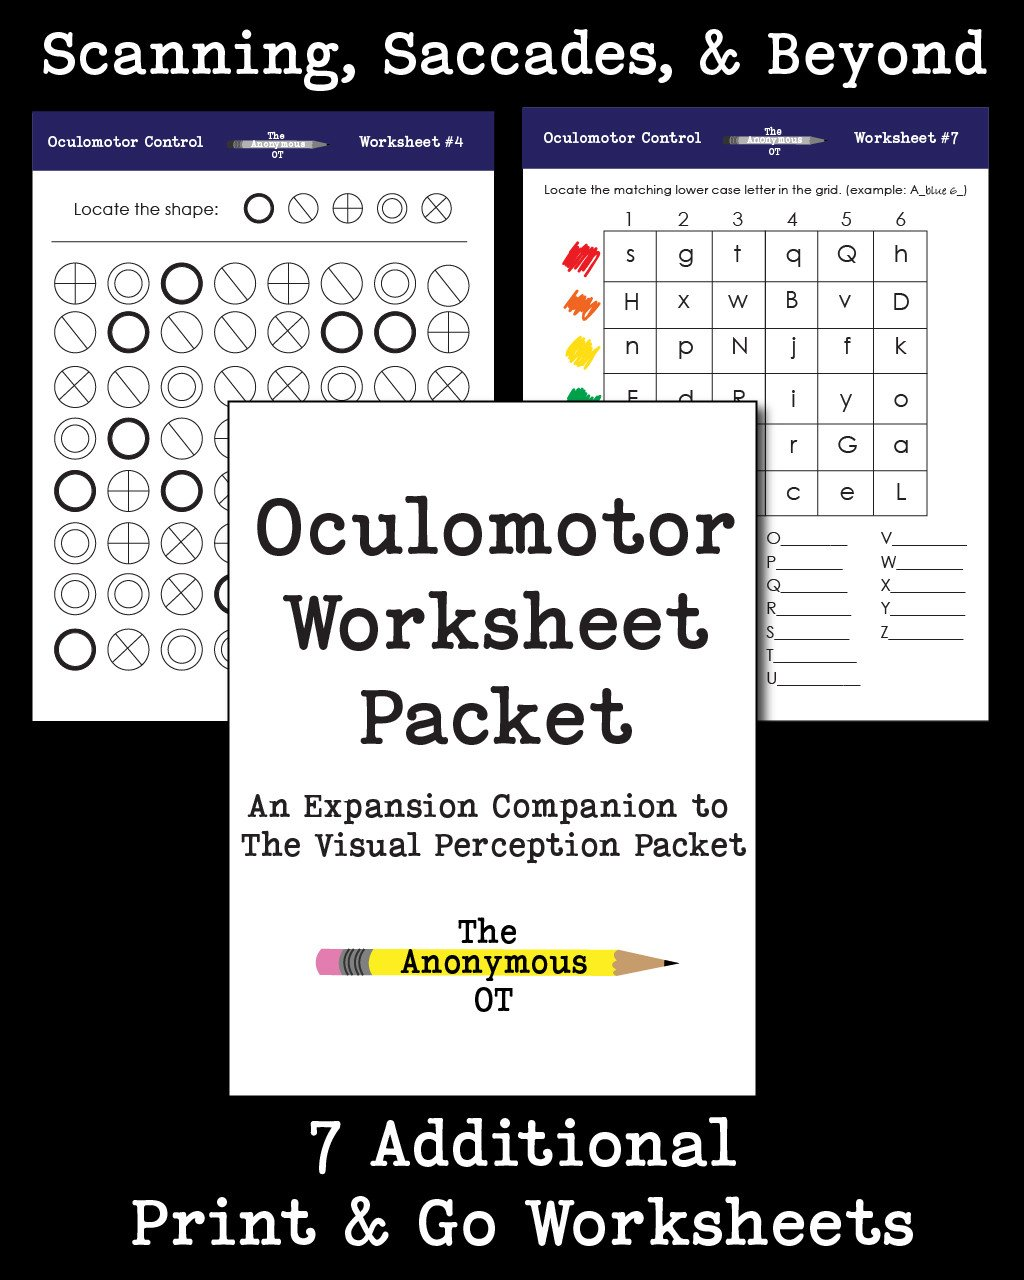 Artboard 1Oculomotor Packet Preview